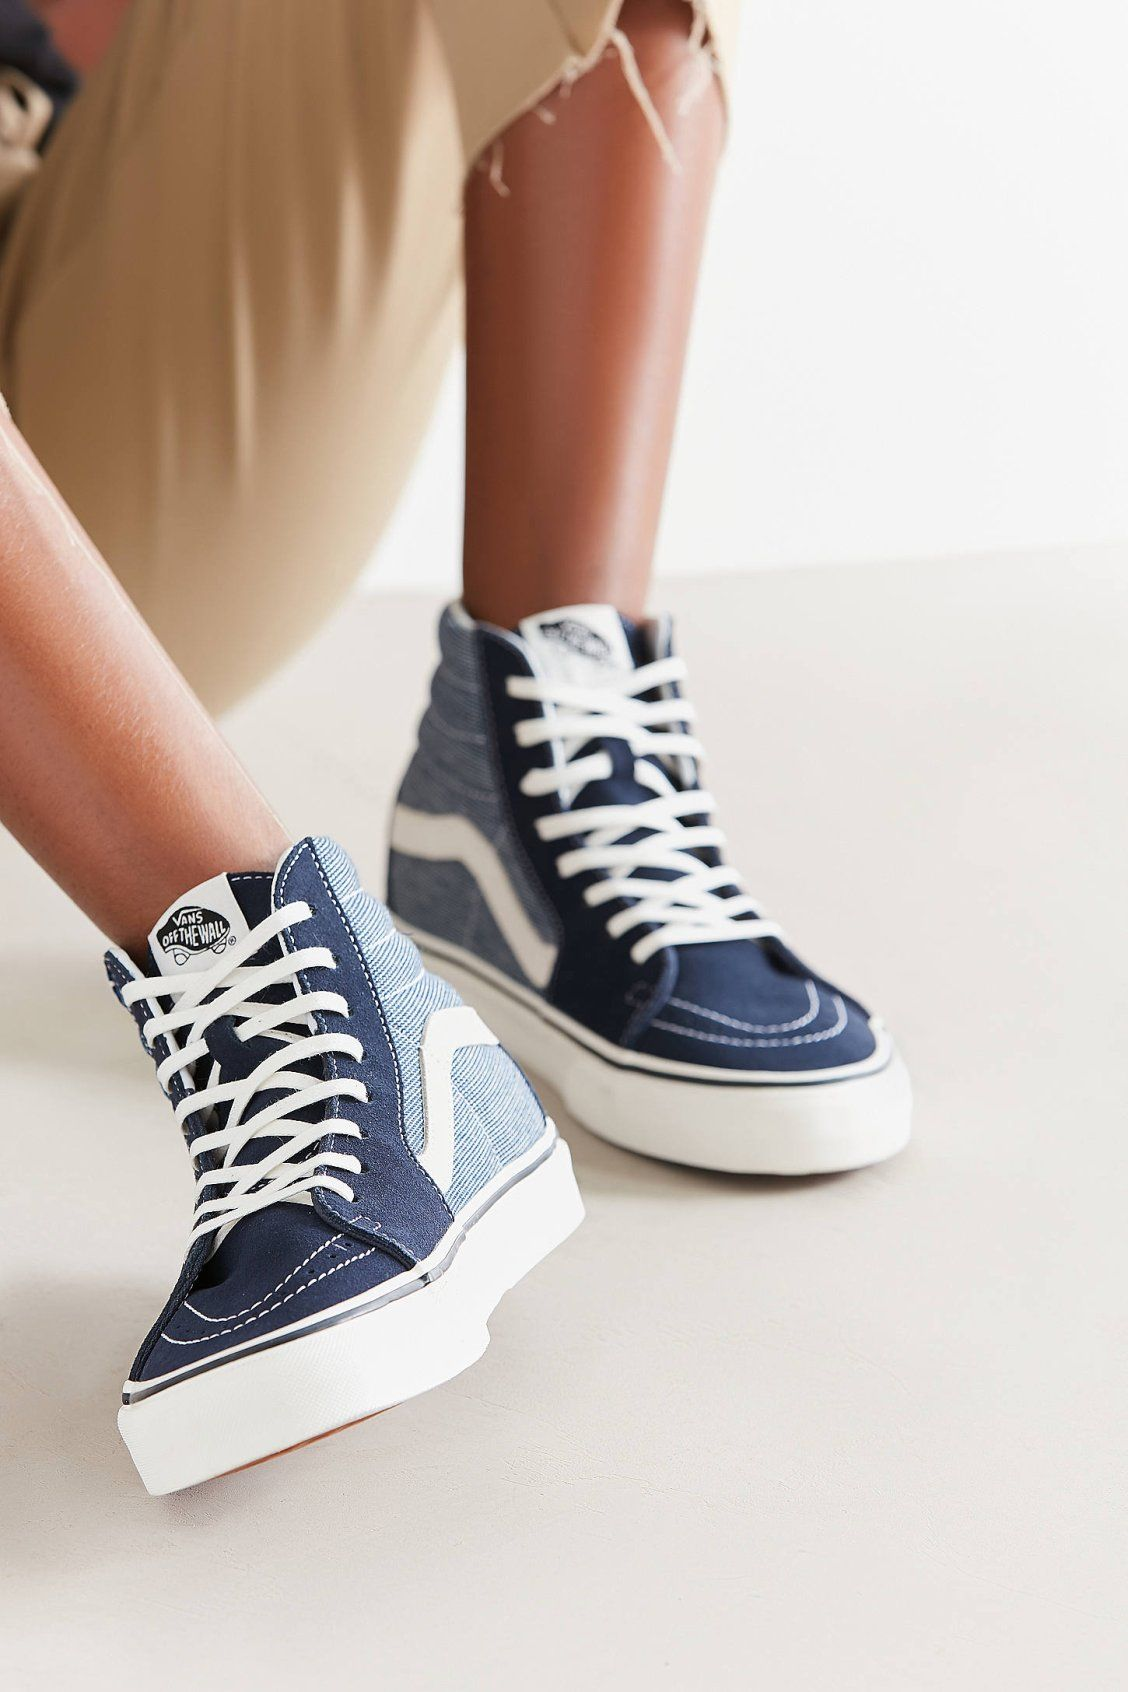 c1d007cd90 Vans Sk8-Hi Patchwork Denim Sneaker